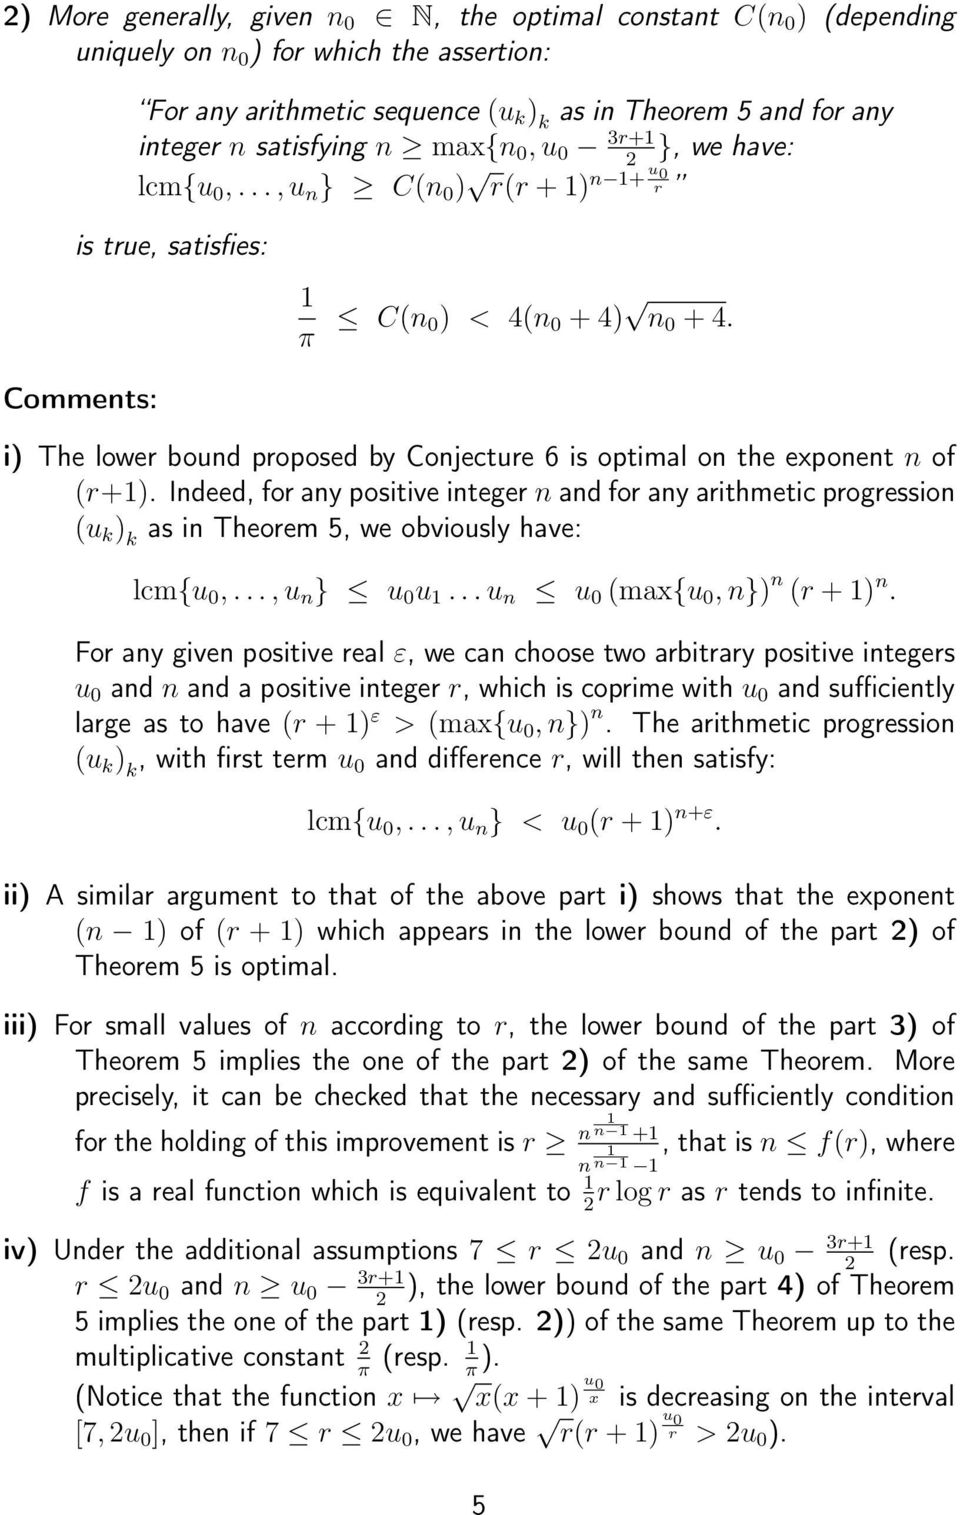 Comments: i) The lowe bound poposed by Conjectue 6 is optimal on the exponent n of (+1).